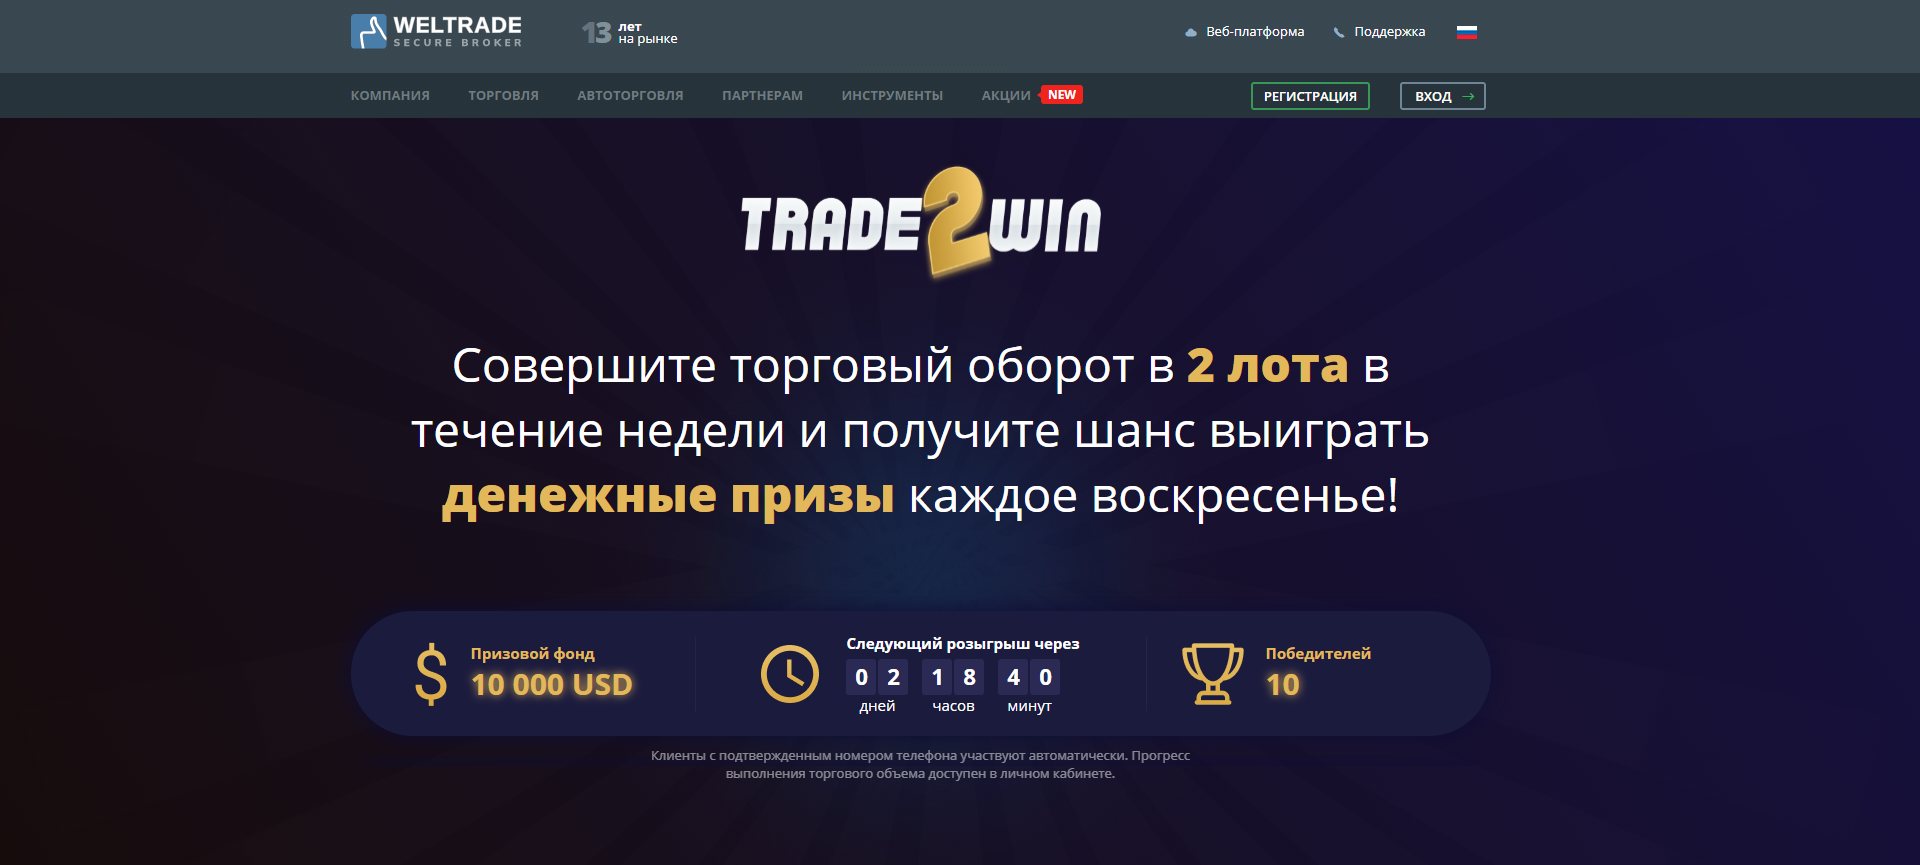 Promotion for traders TRADE2WIN from WELTRADE. $10 000 prize pool every week